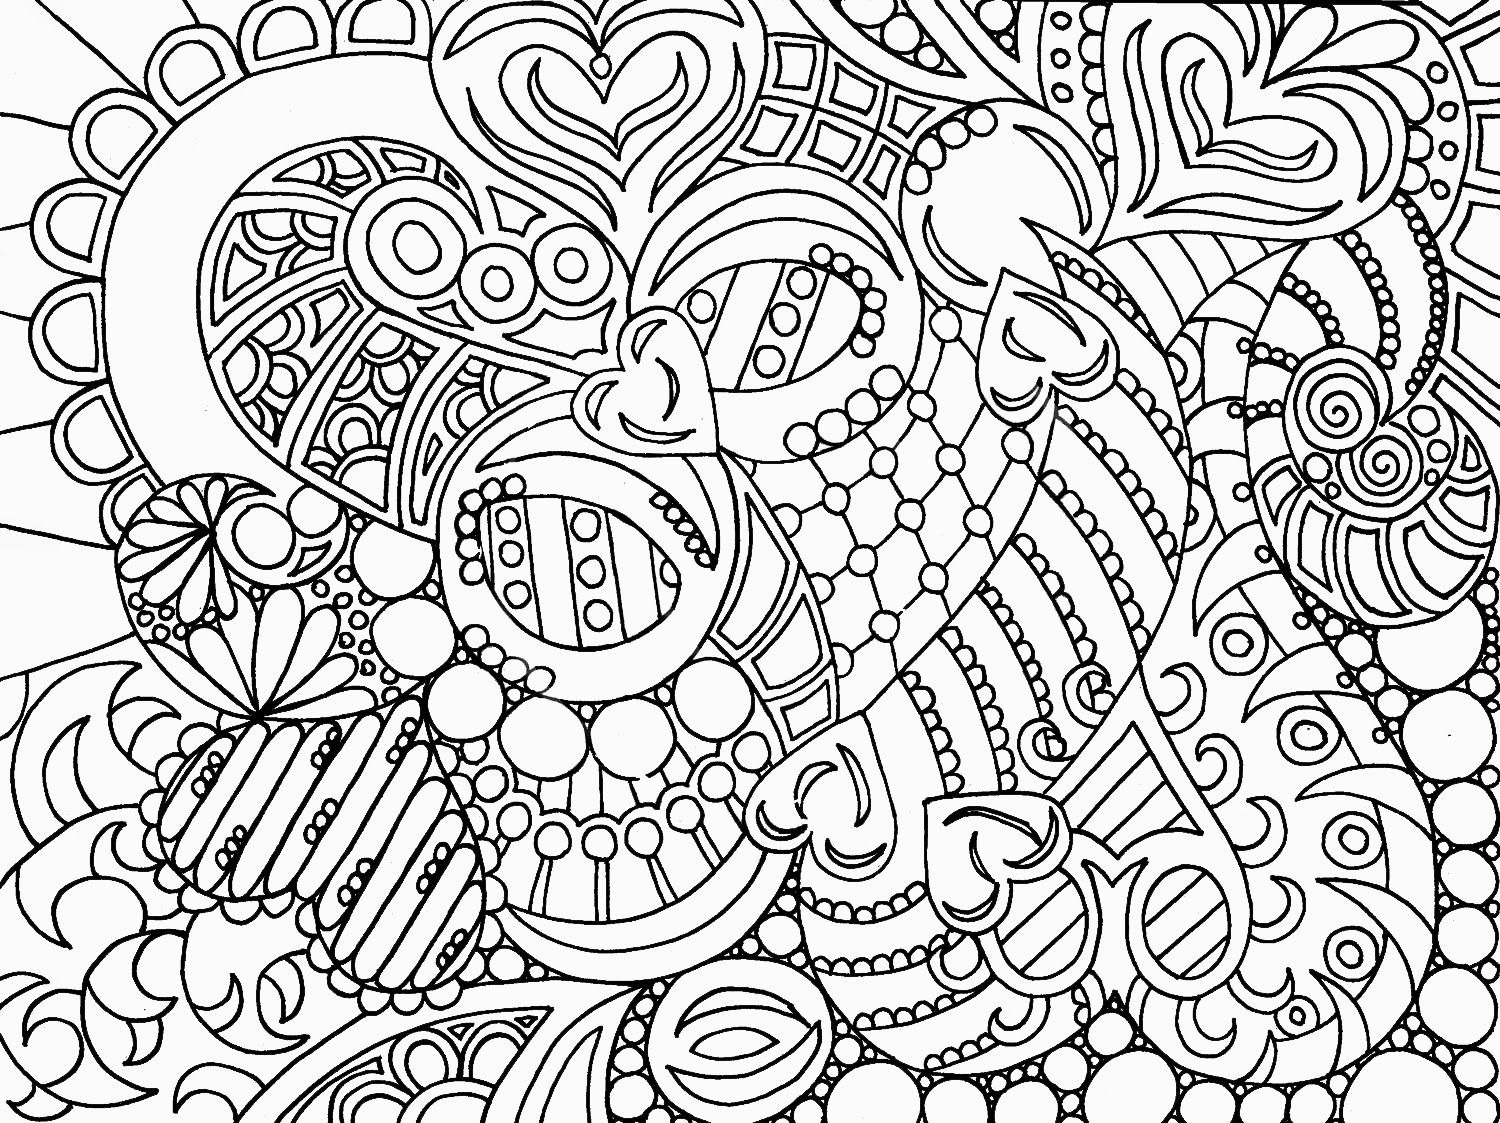 Free online printable adult coloring pages - Abstract Coloring Pages You Can Get Abstract Art Coloring Pages For Adult Here